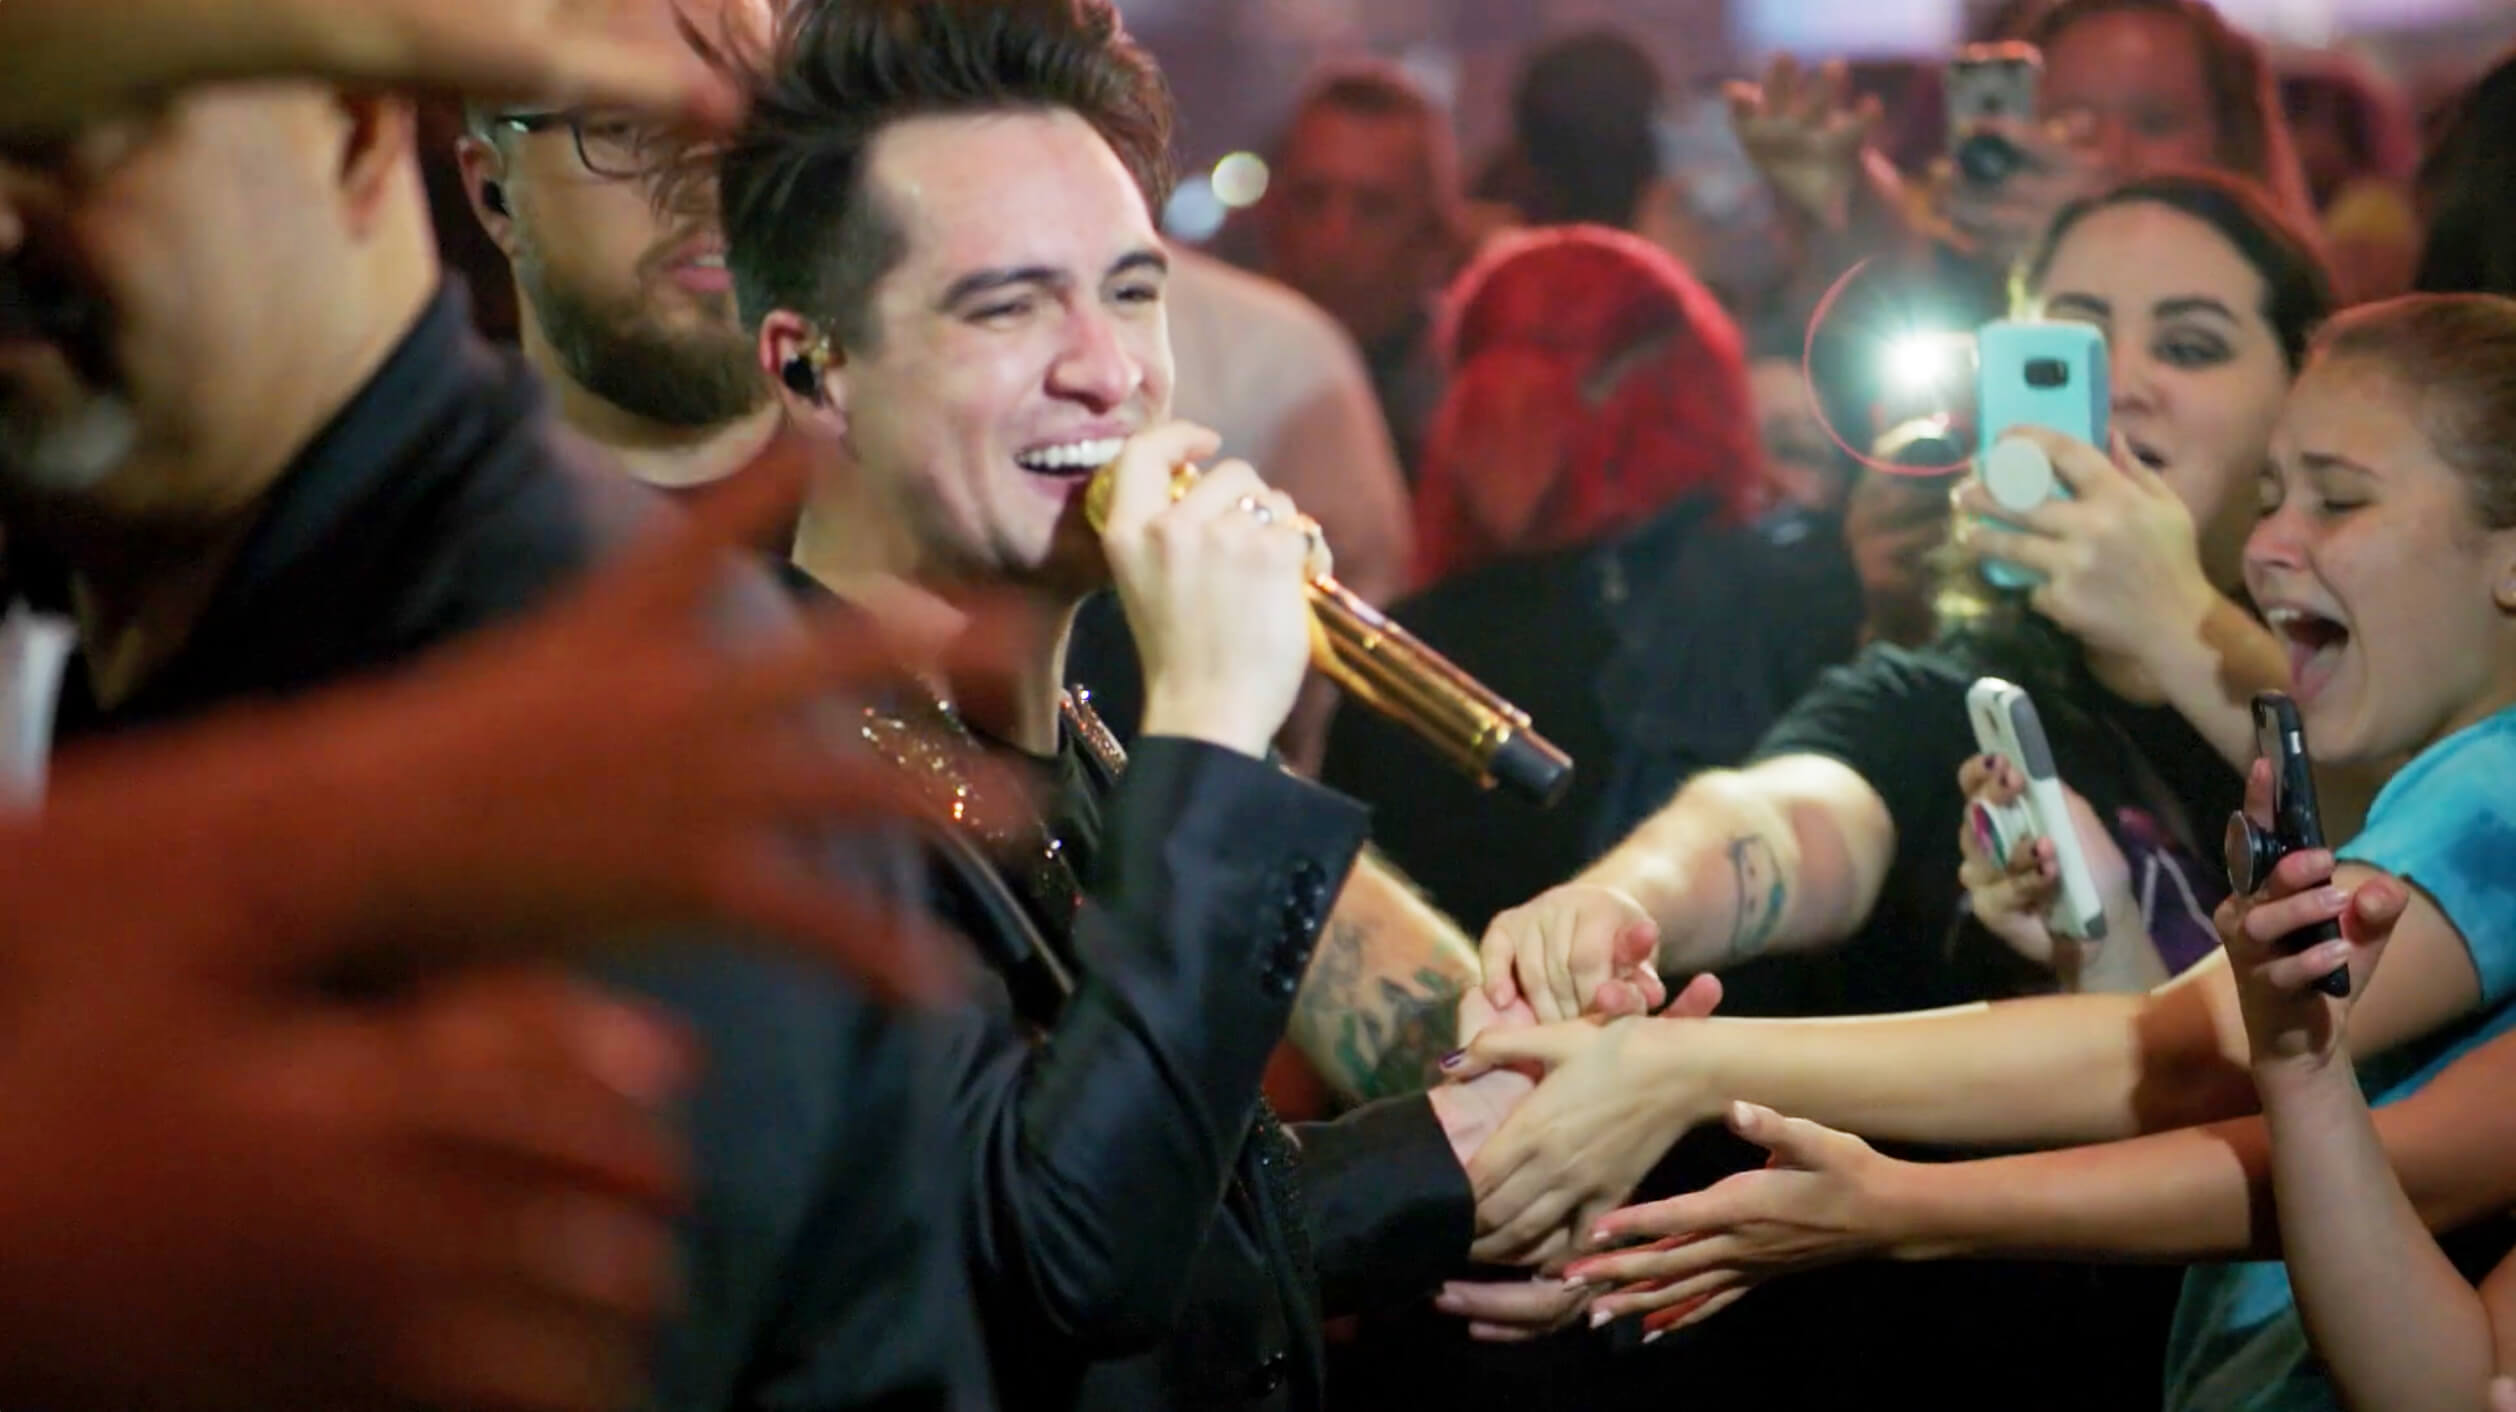 Brendon Urie from Panic! At The Disco was positively impacted by his experiences with mentorship at a young age, and TMA developed a Neighborhood of Good content series to help tell that story.